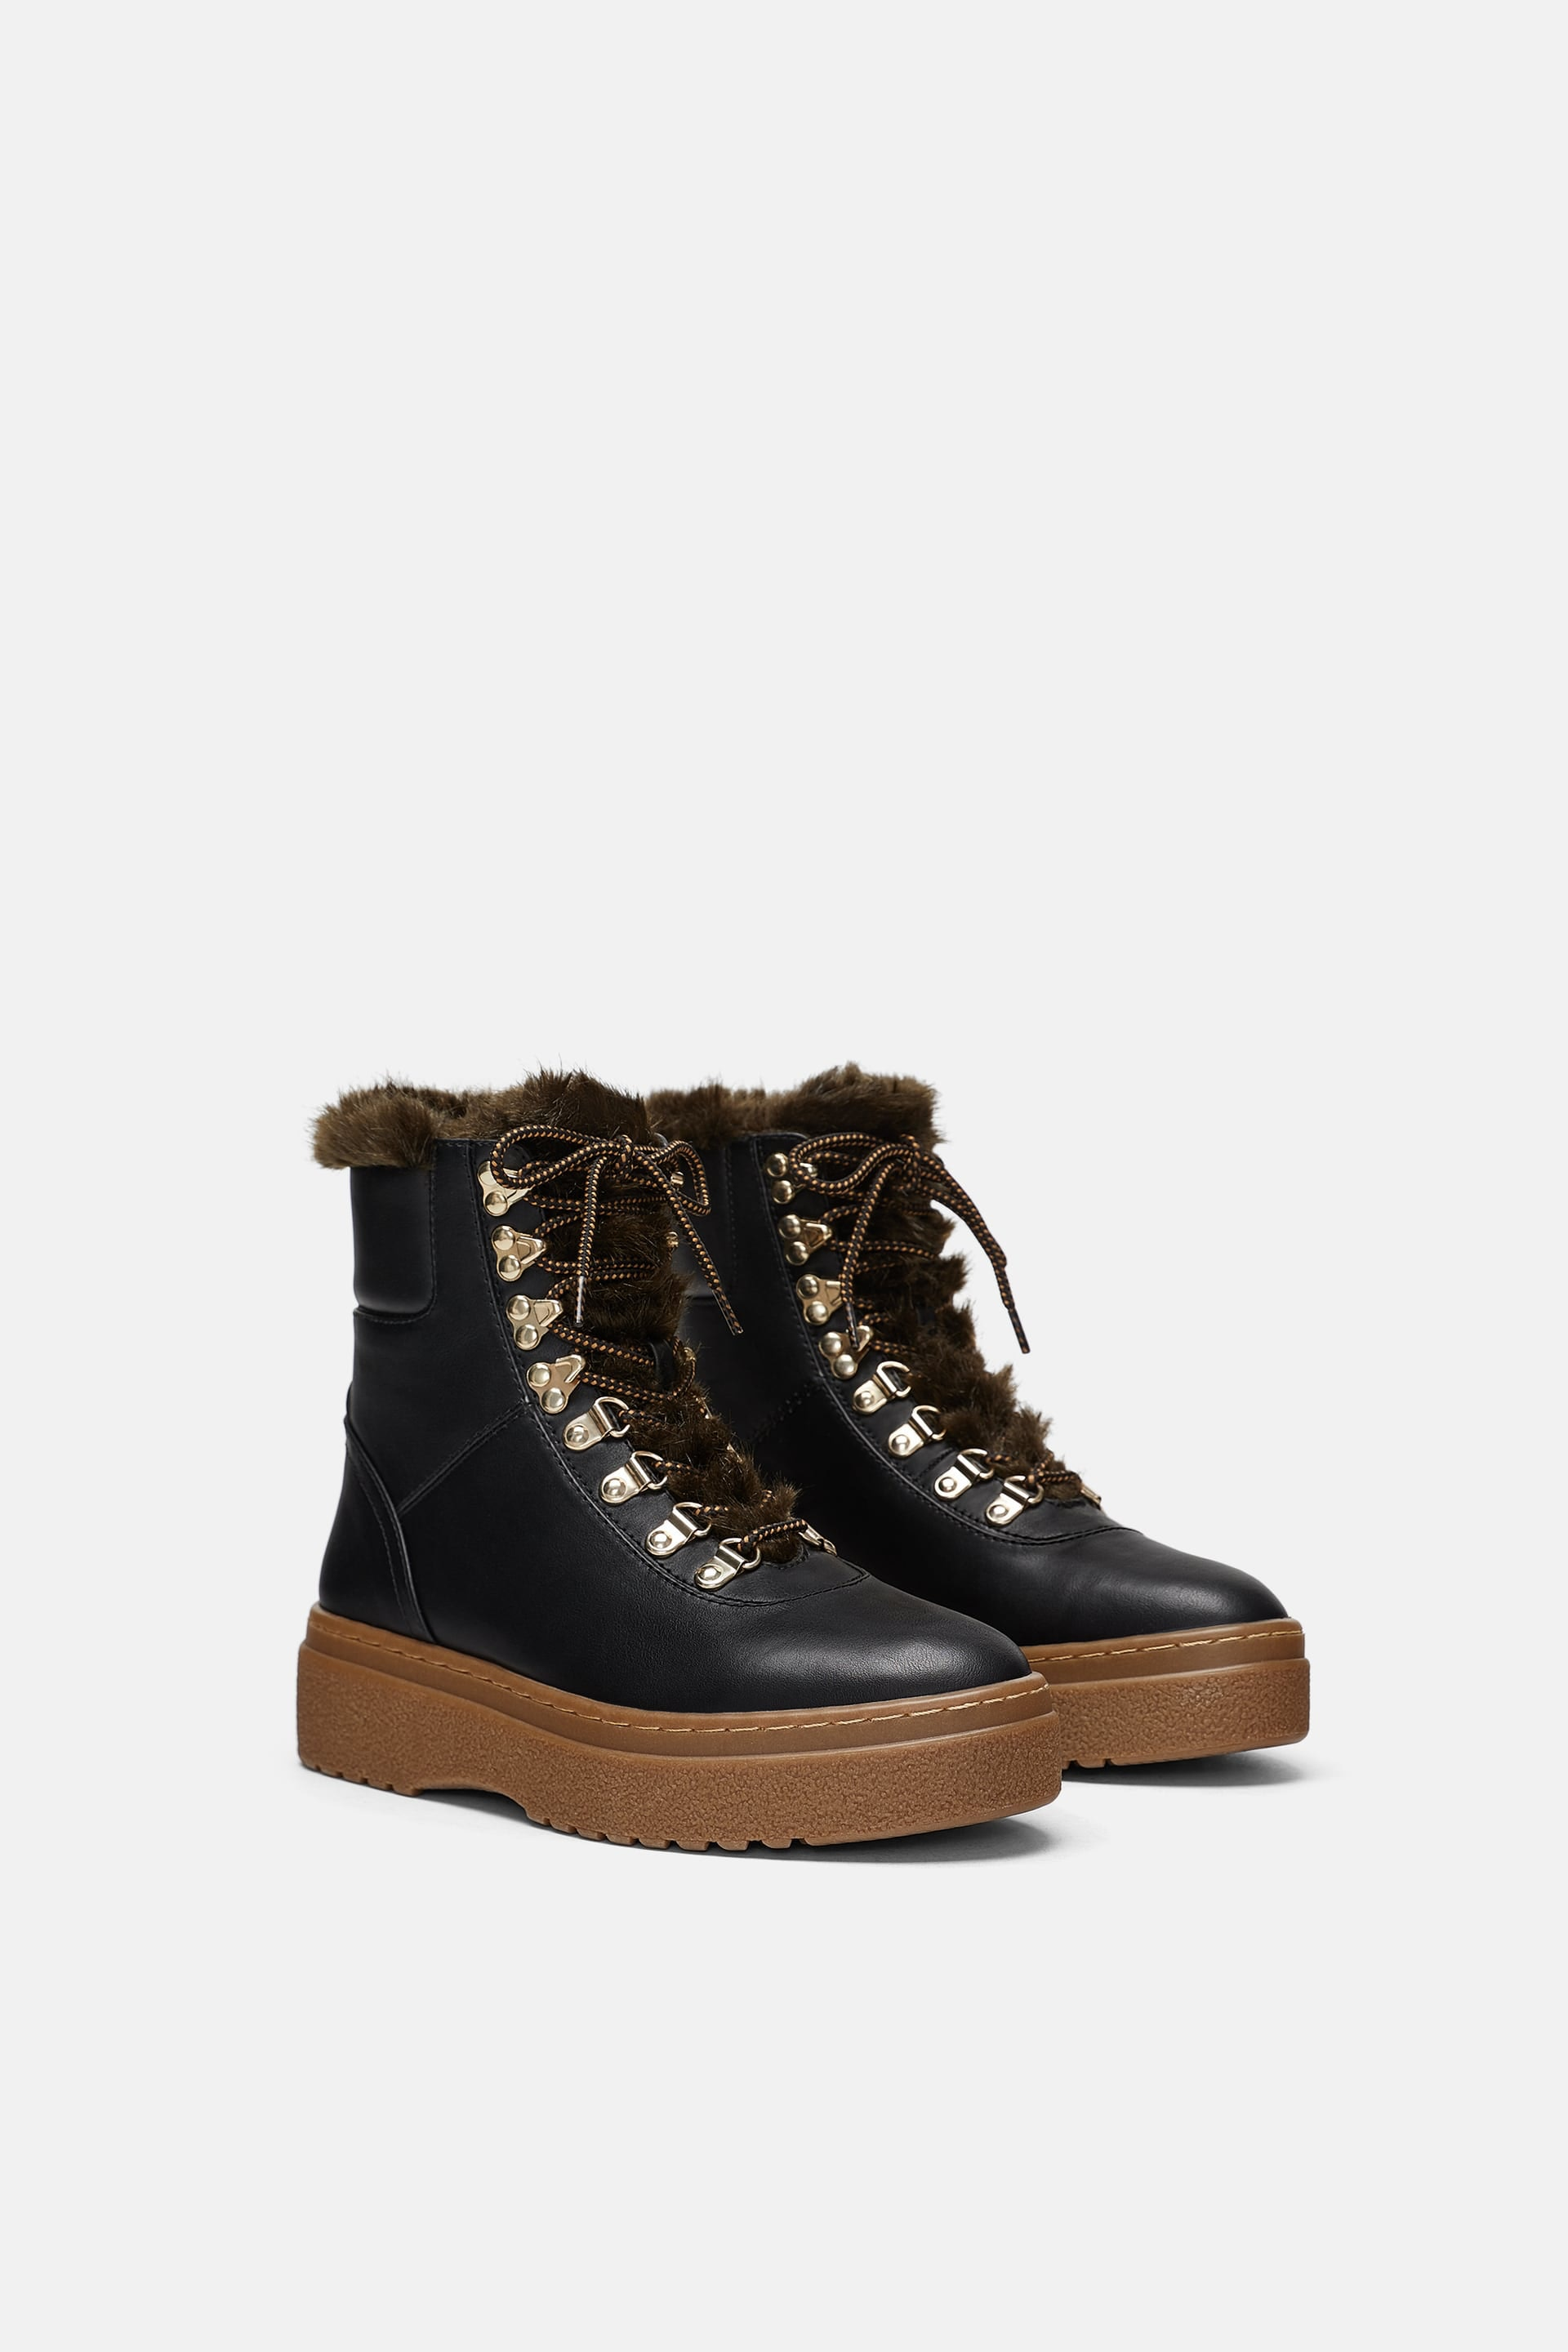 10 Flat Winter Boots Under $100 To Snag